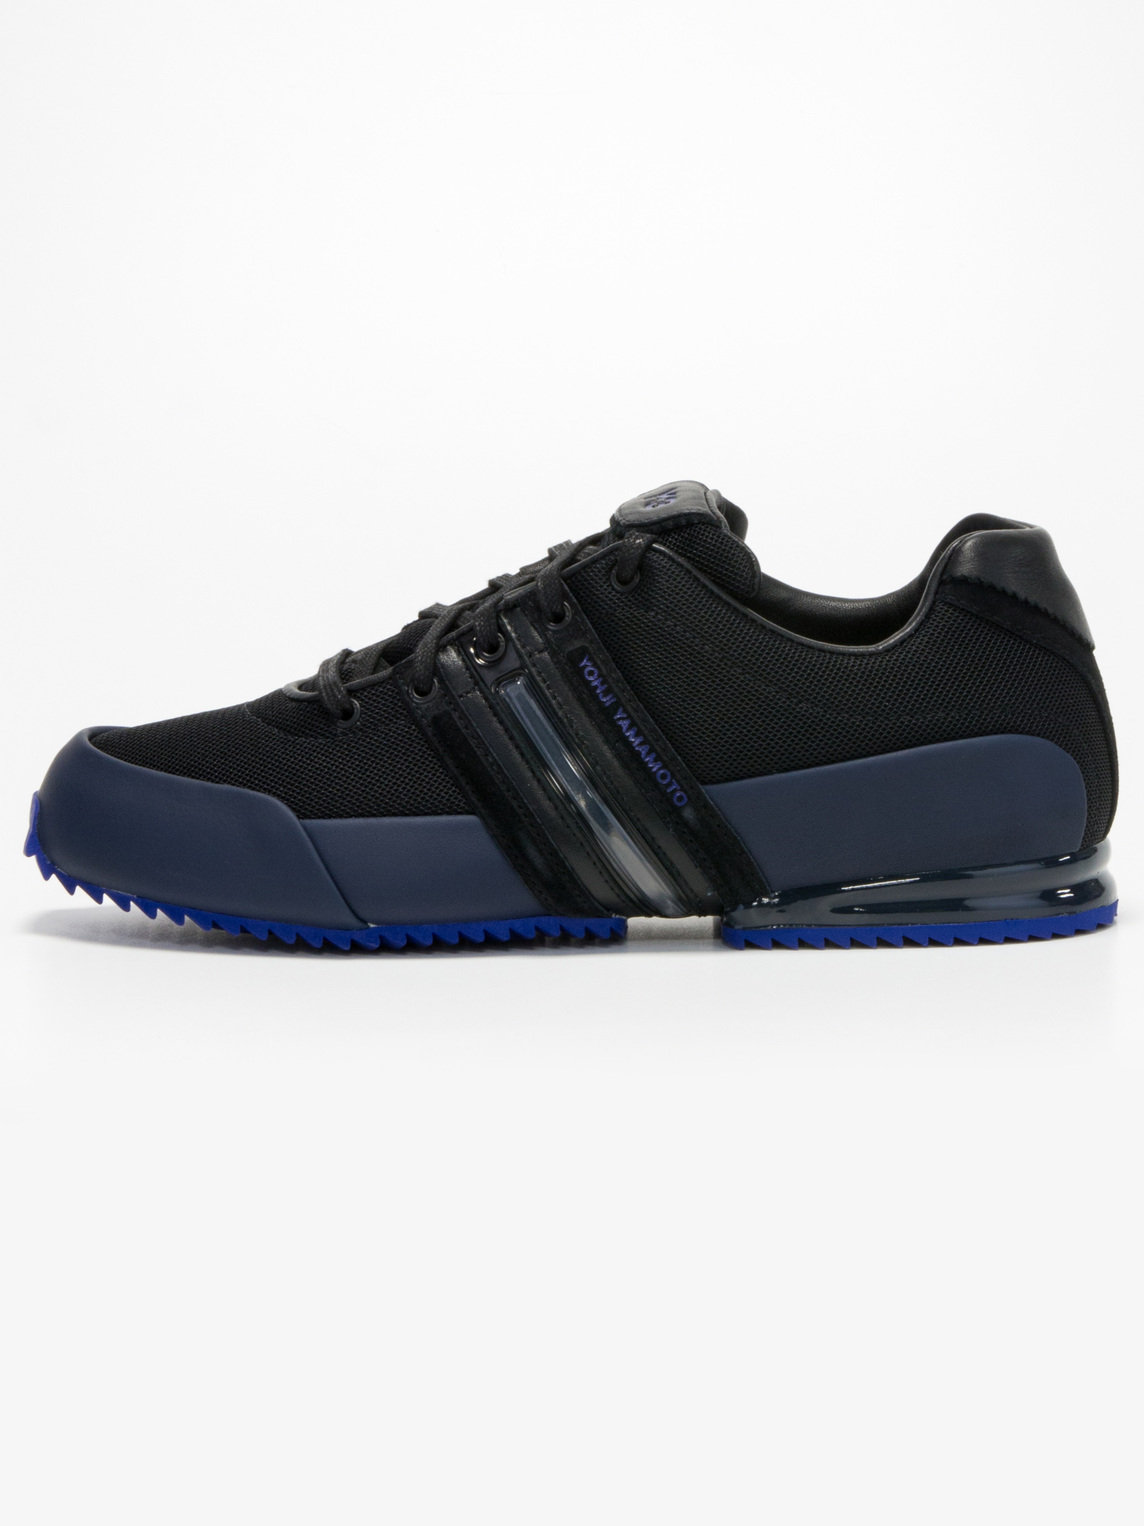 27eb555fbc145 The Y3 Sprint takes its inspiration from some of the most iconic Adidas  track and field silhouettes and gives the look a high end revamp.